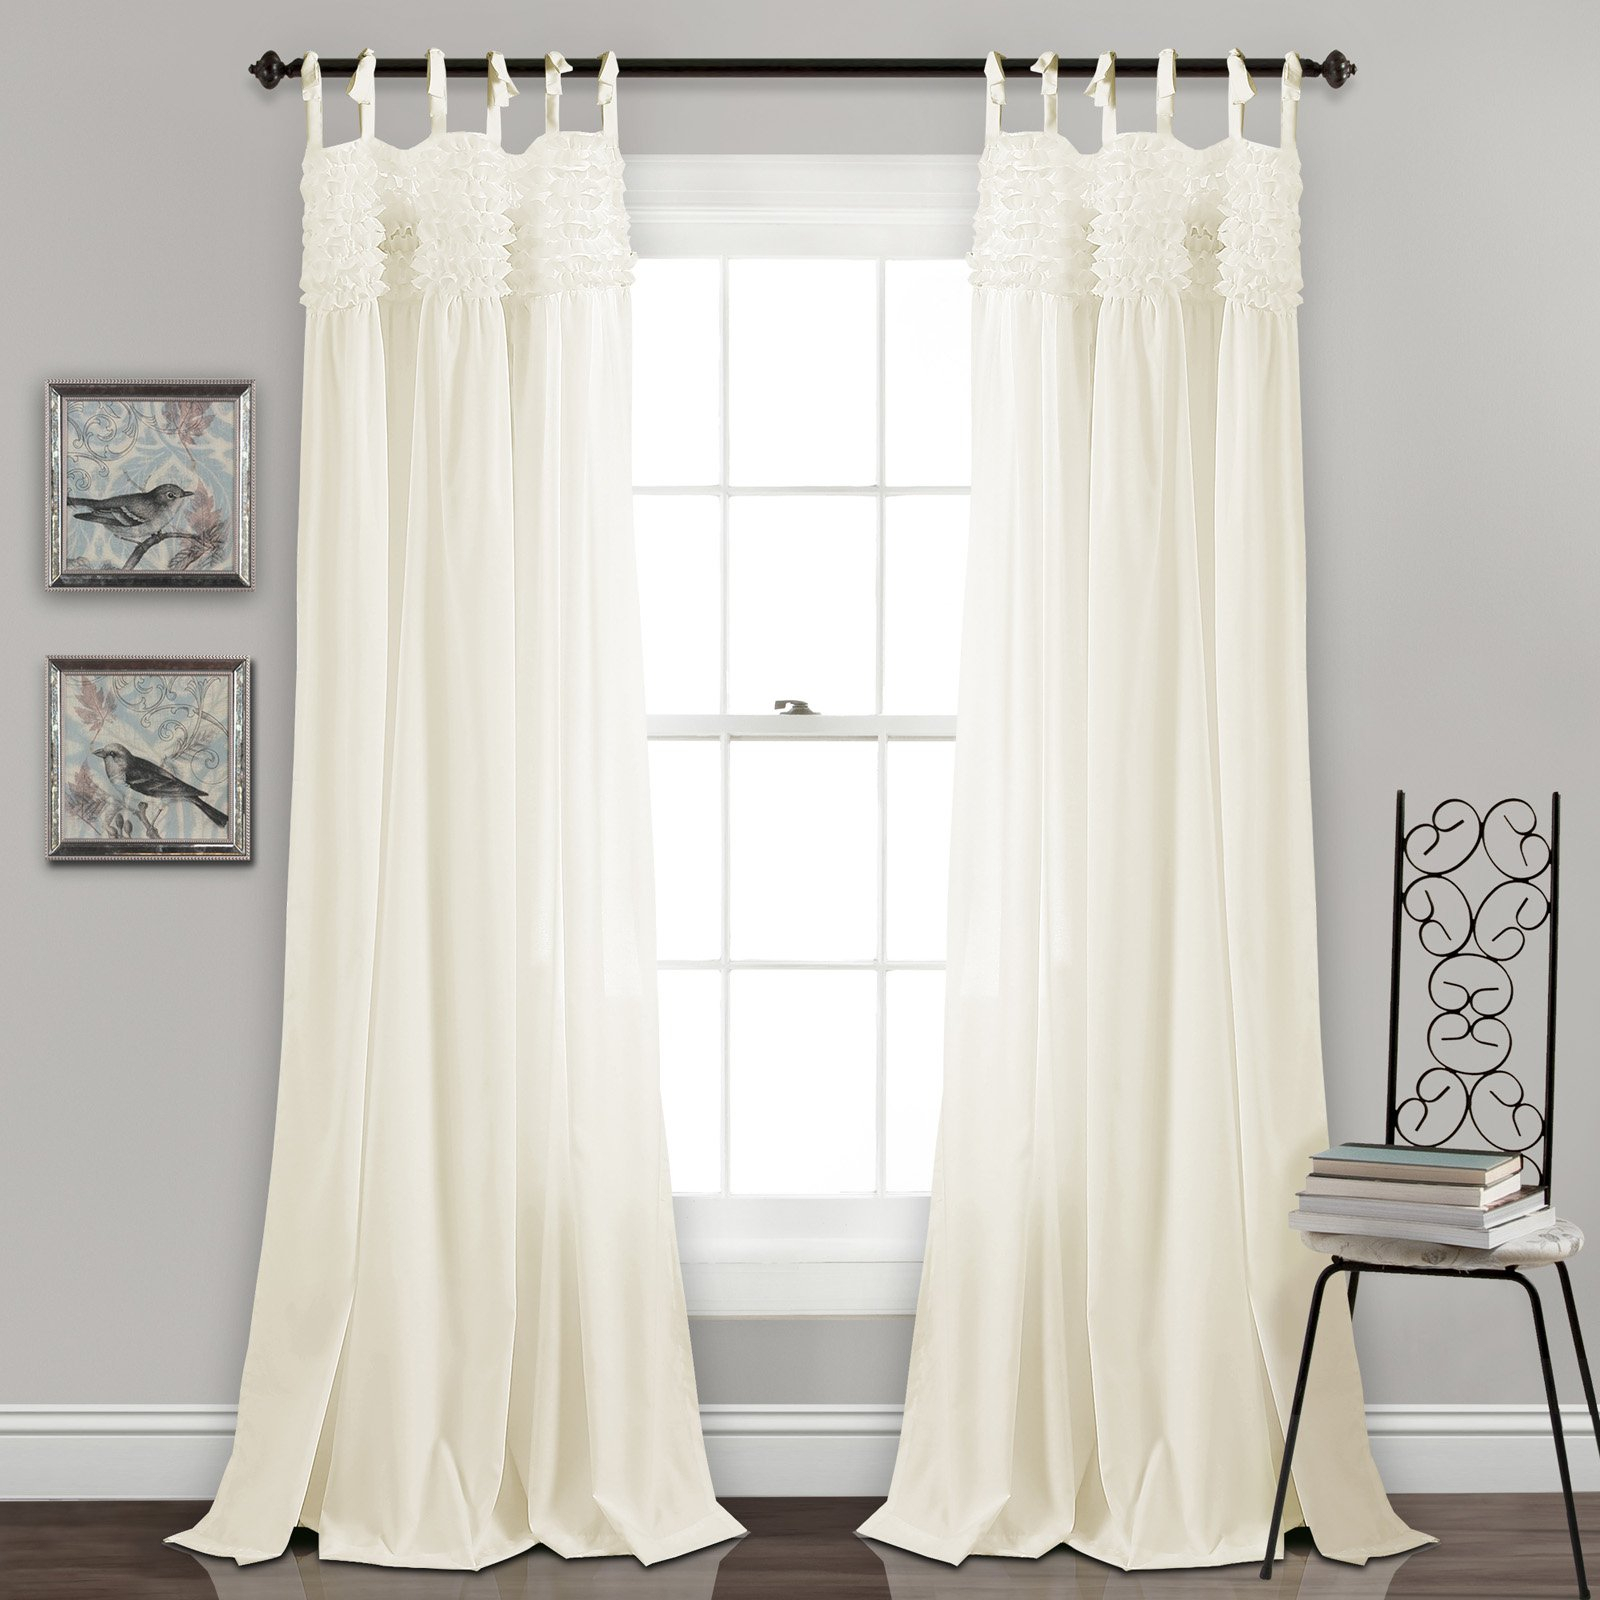 Lush Decor Lydia Ruffle Panel Pair Ivory | Products In 2019 Within Ruffle Diamond Curtain Panel Pairs (View 12 of 20)